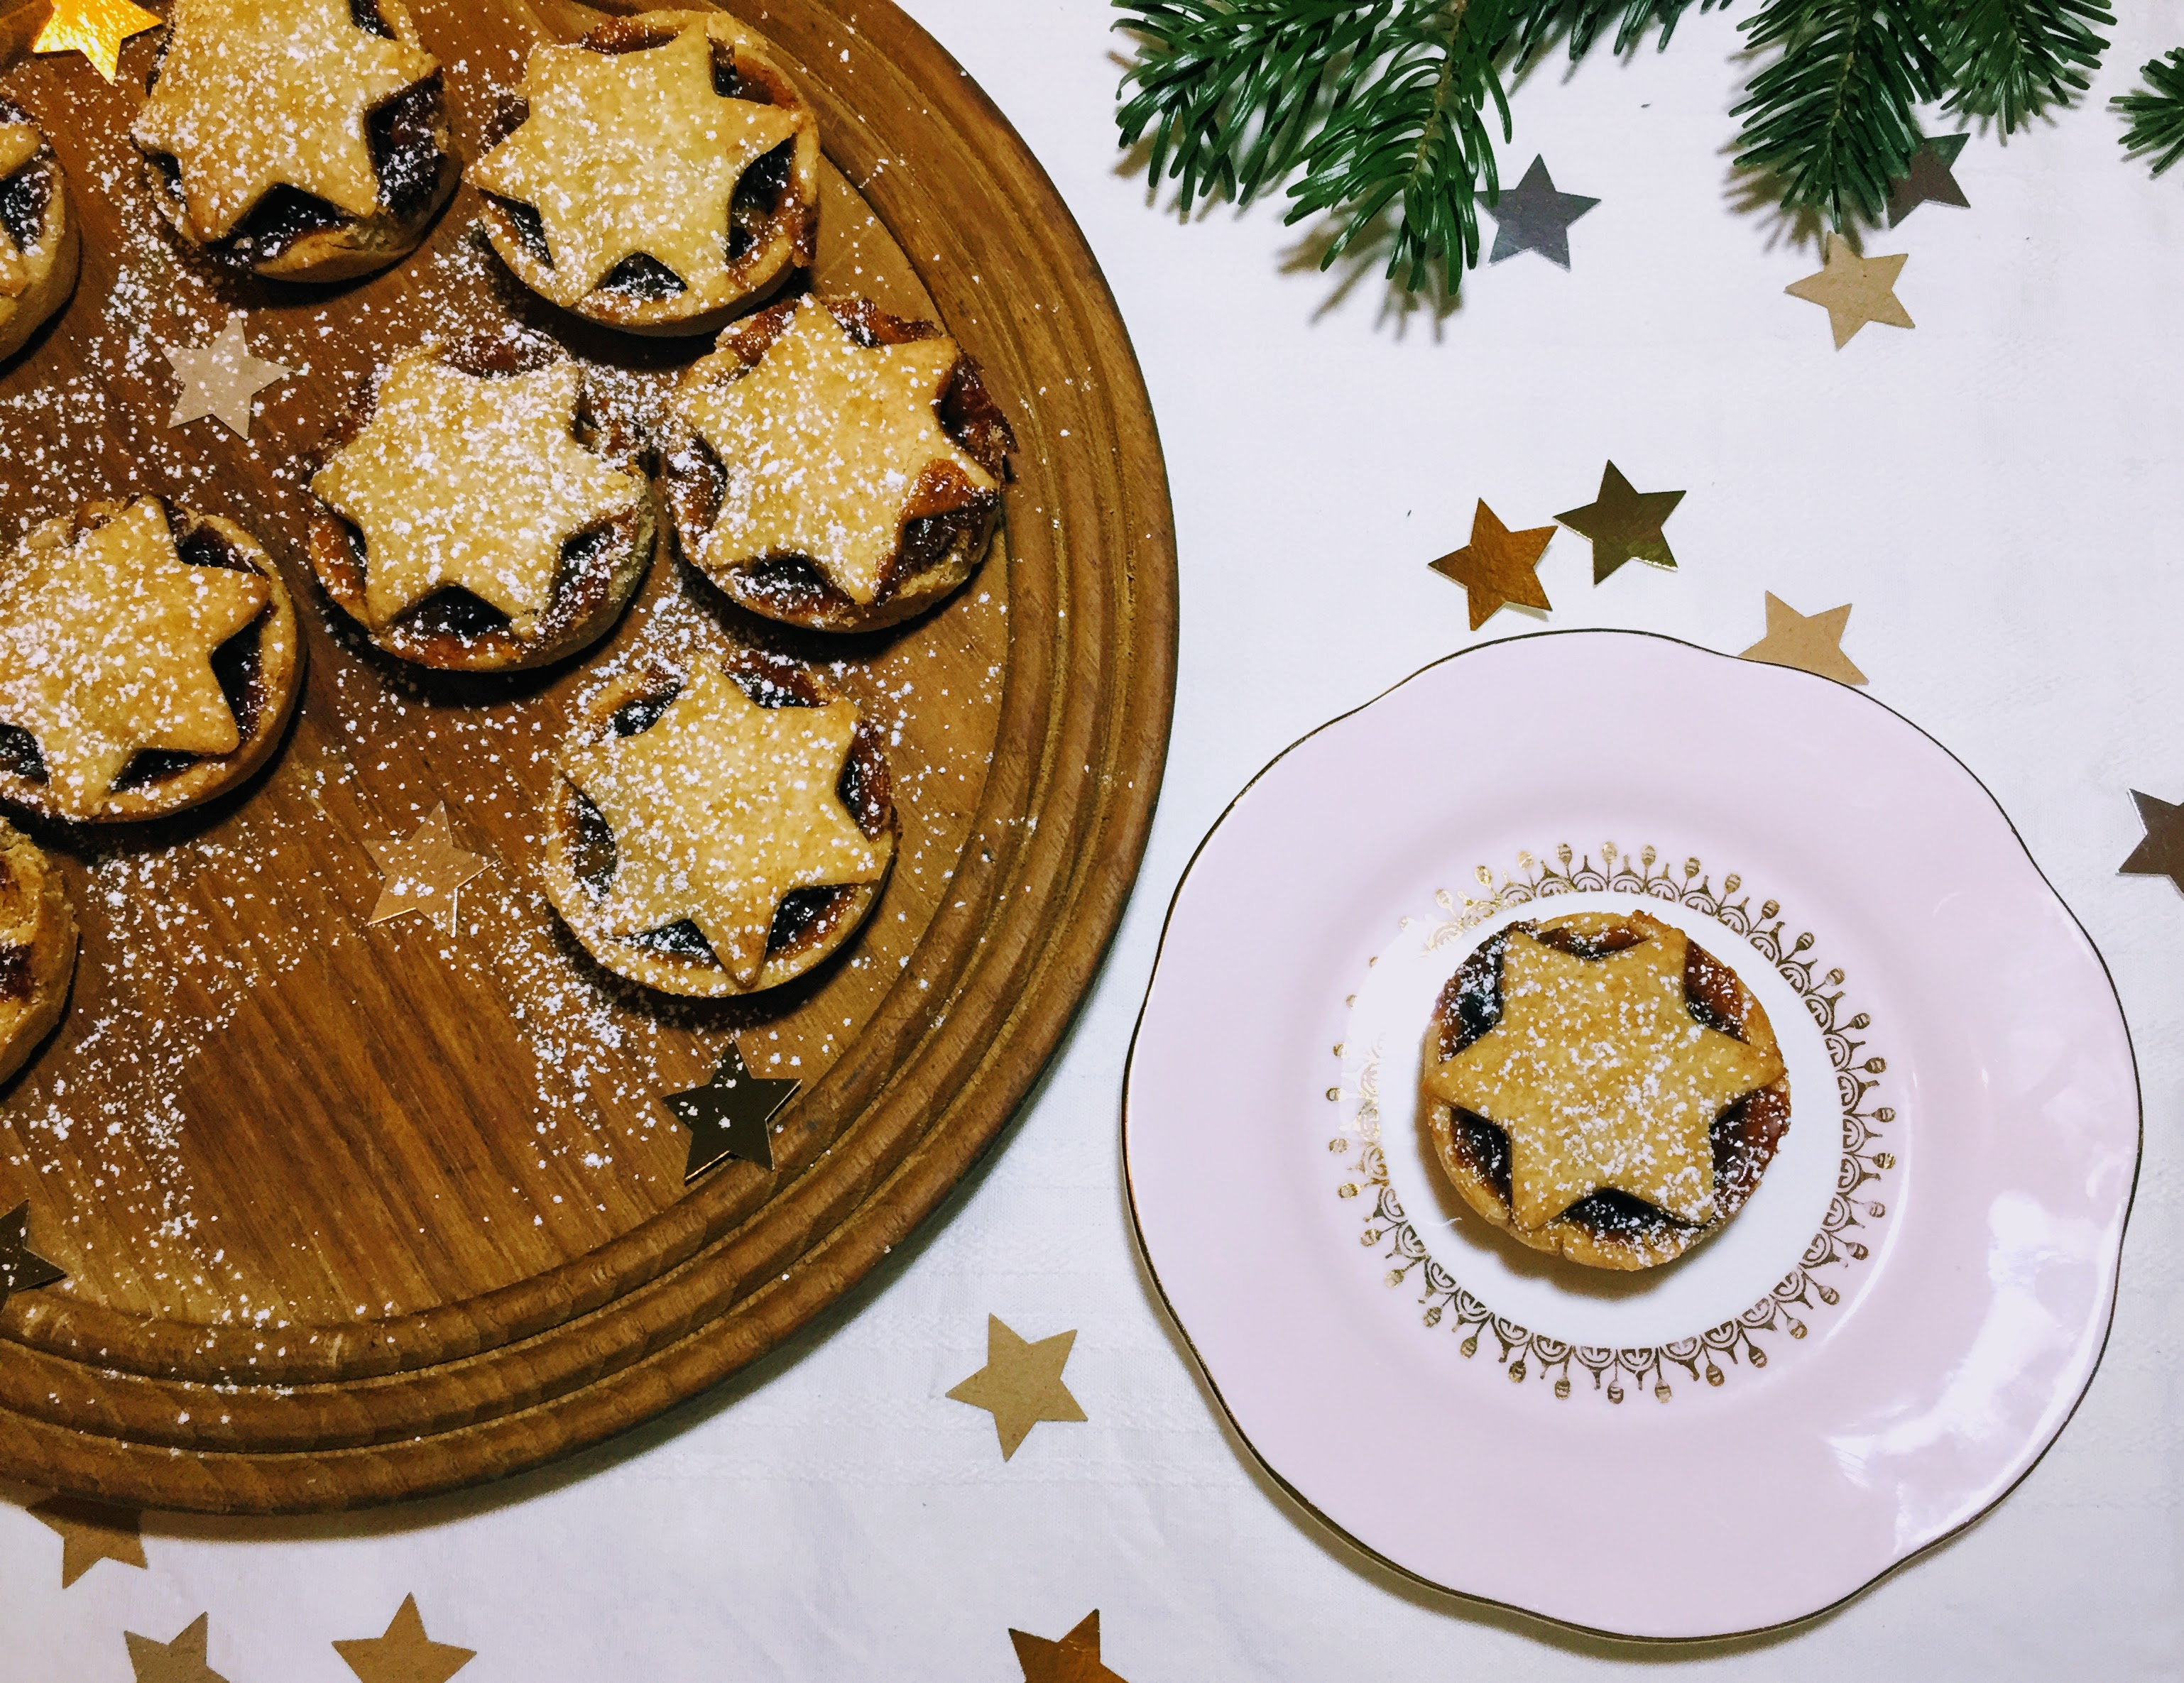 Mince pies on a wooden board, with star-shaped lids of golden pastry, dusted with icing sugar. A single pie is next to the others on a pink plate. There are some pine leaves in the top right hand corner and some star-shaped confetti scattered over a white table cloth.